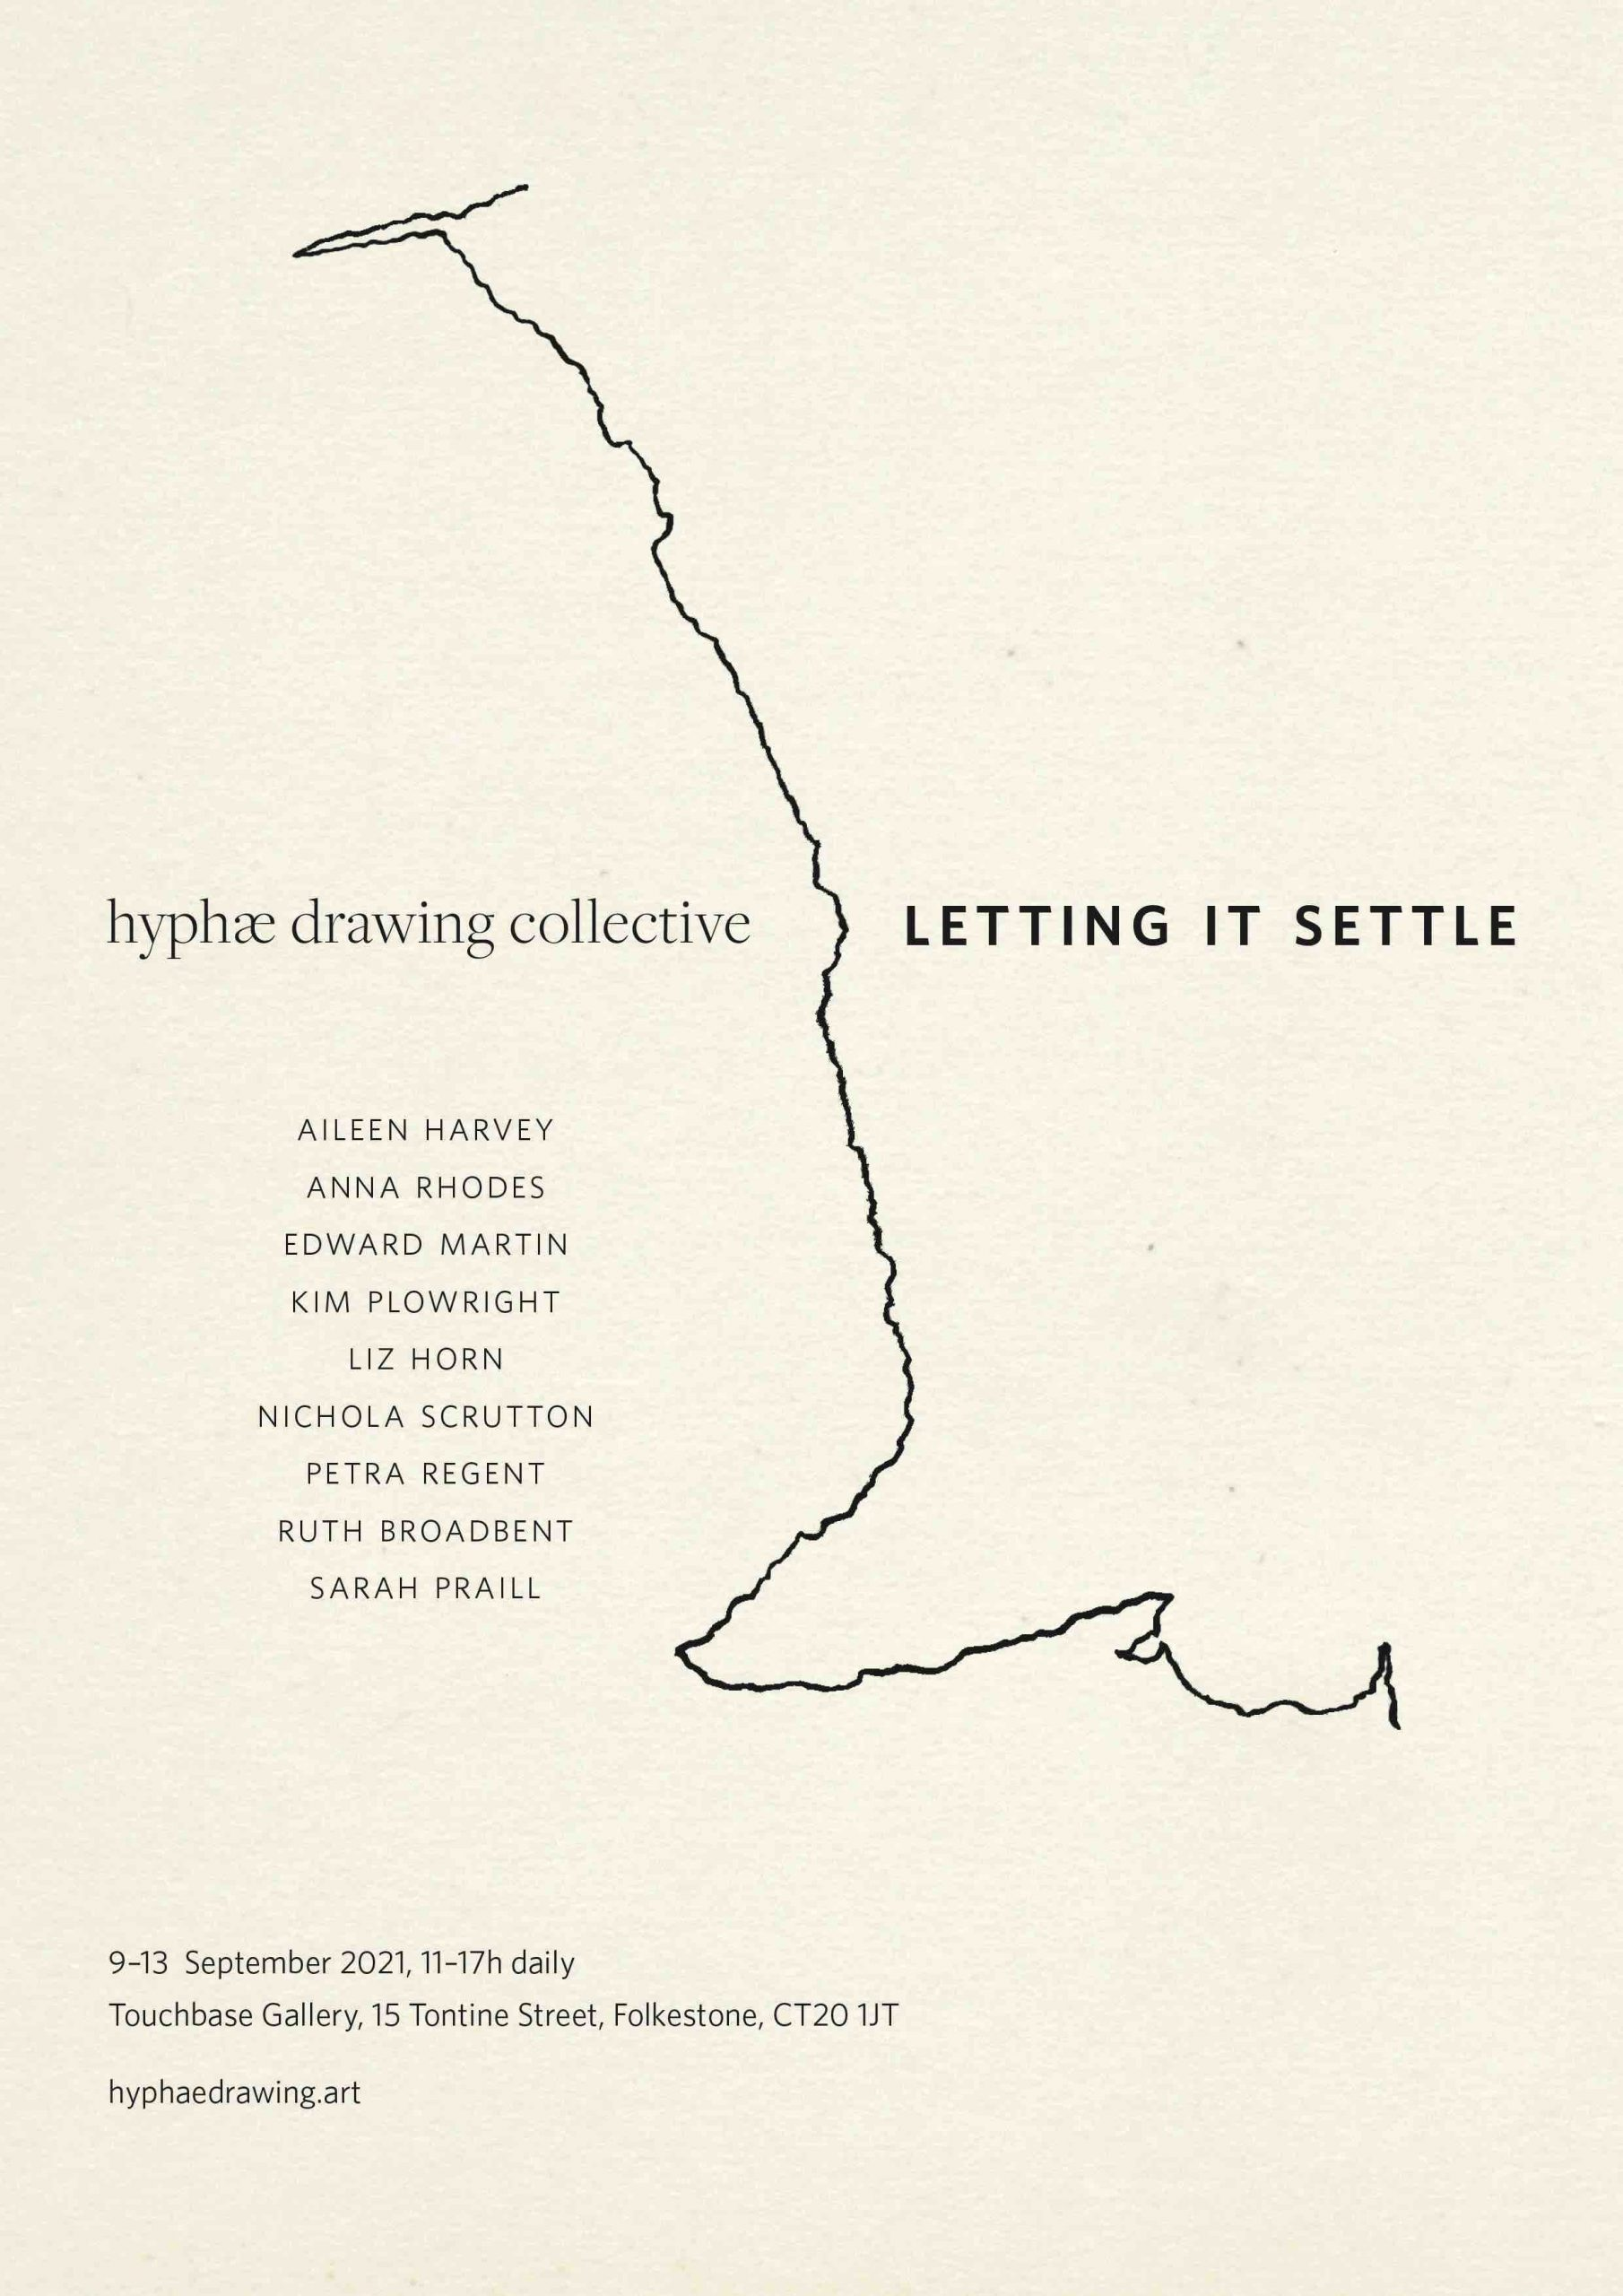 hyphæ drawing collective poster for group show in Folkestone